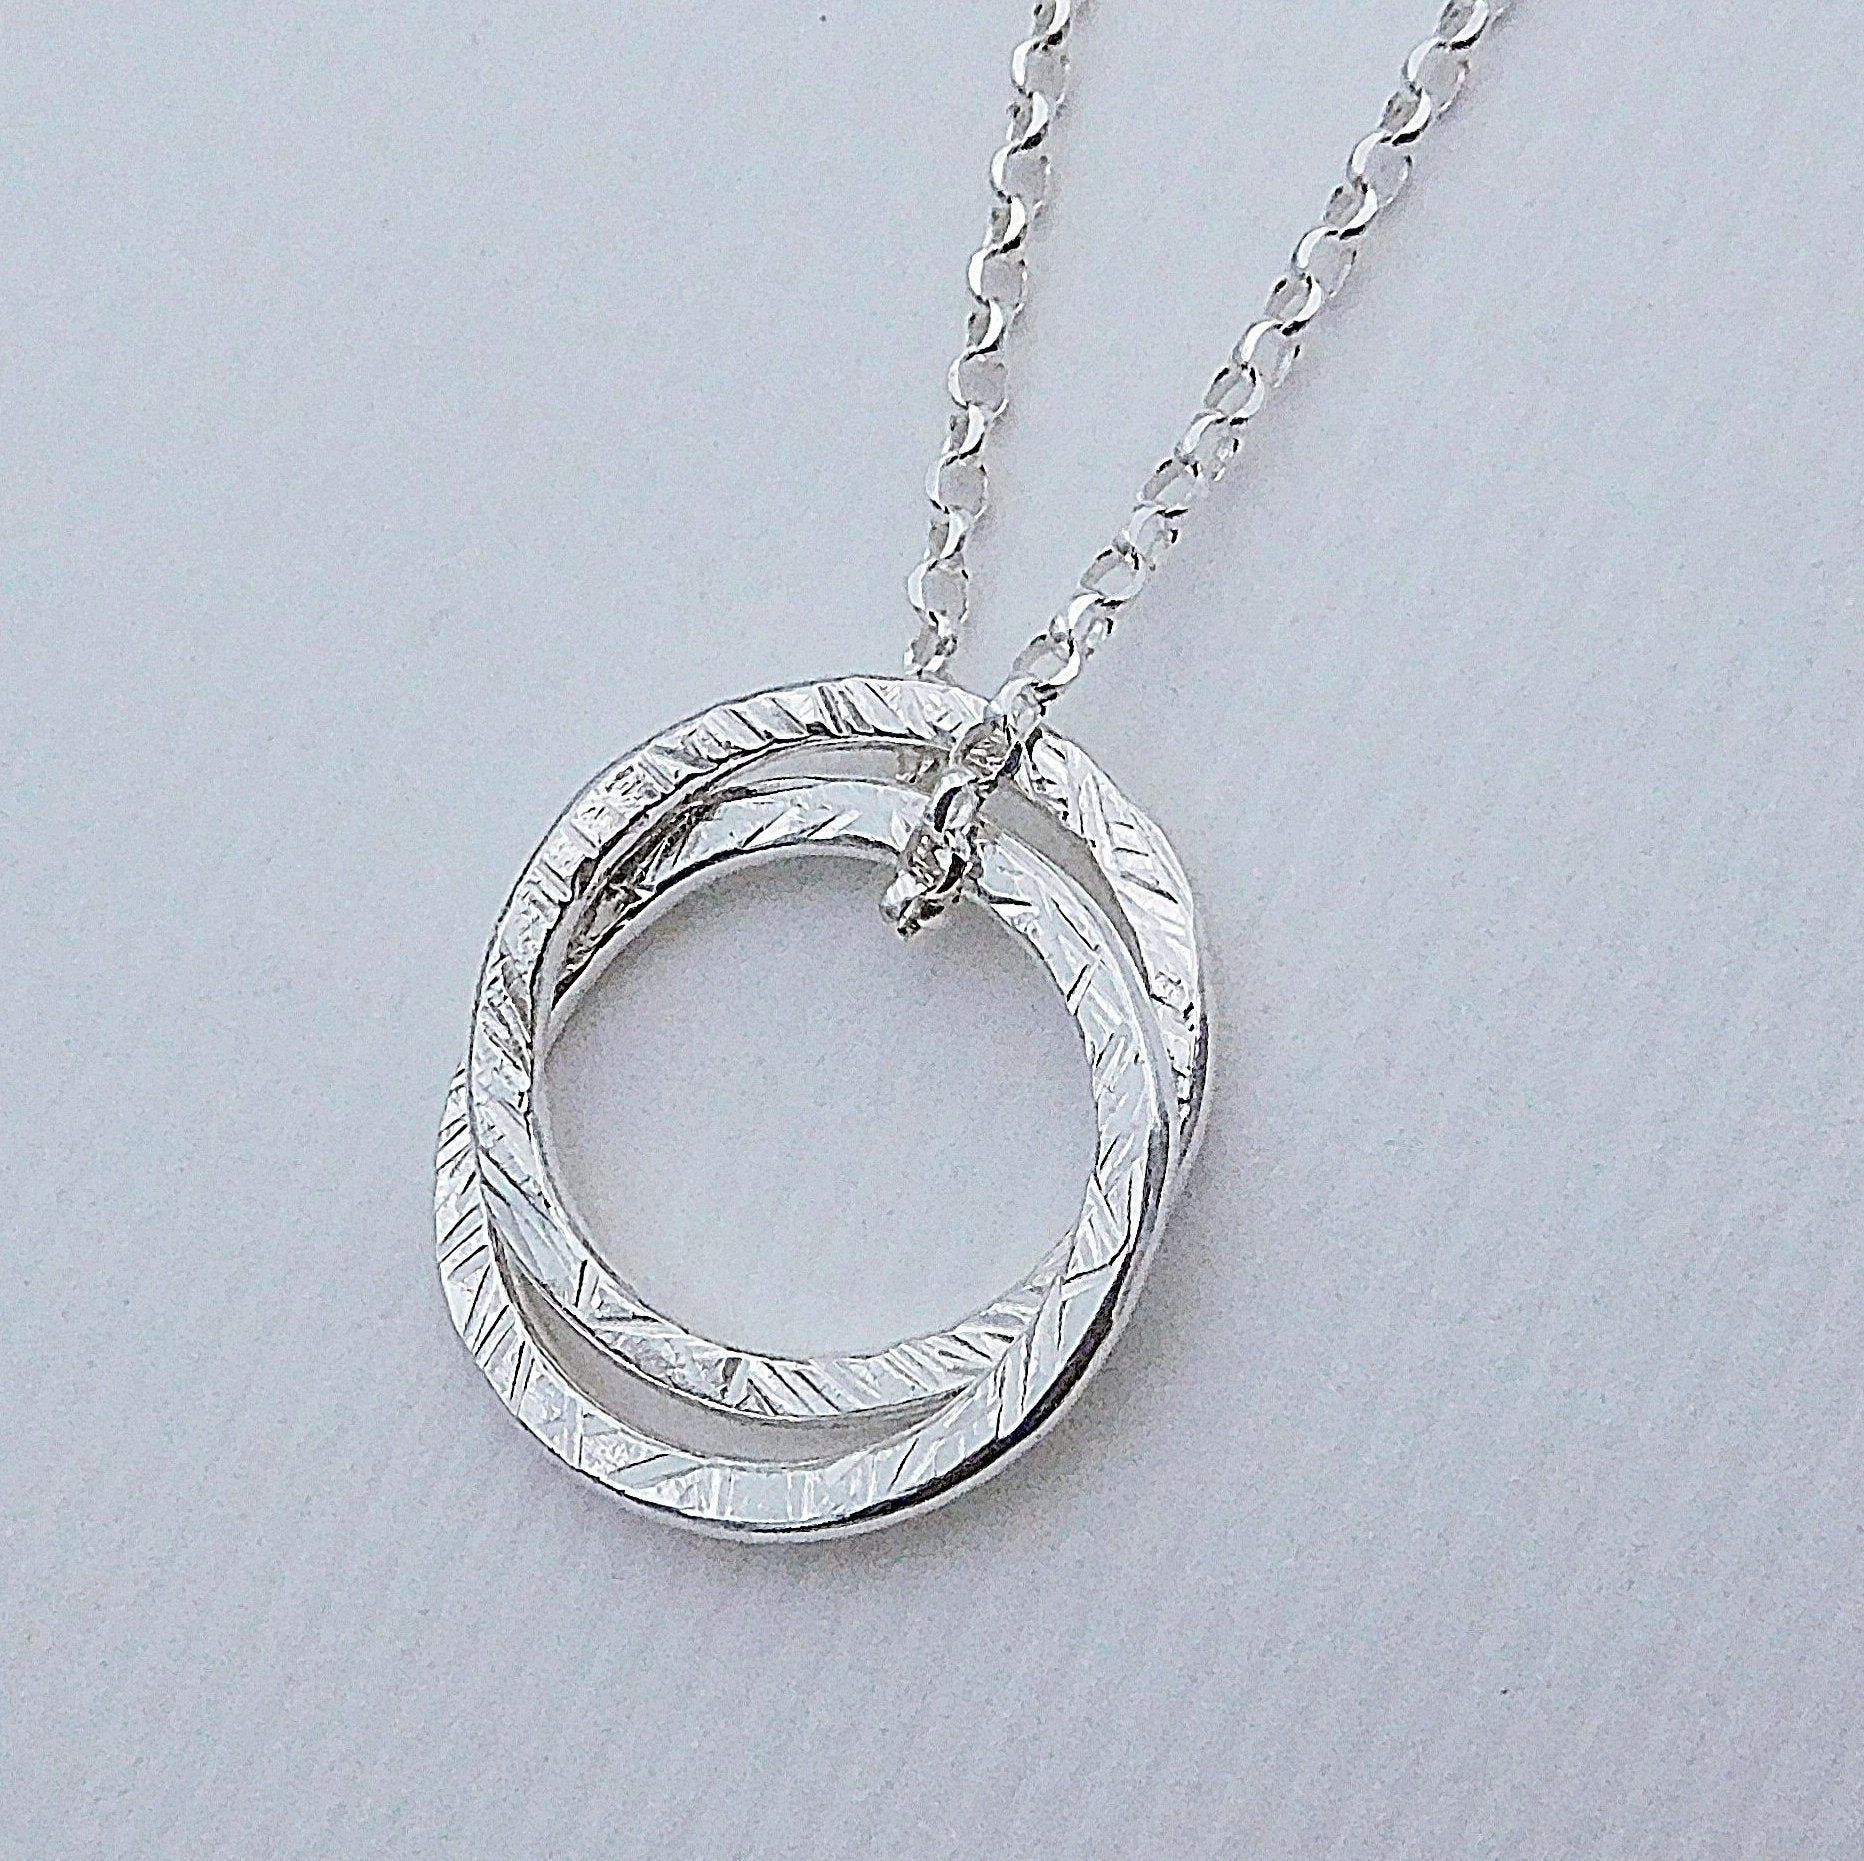 Double Entwined Ring Necklace, Sterling Silver